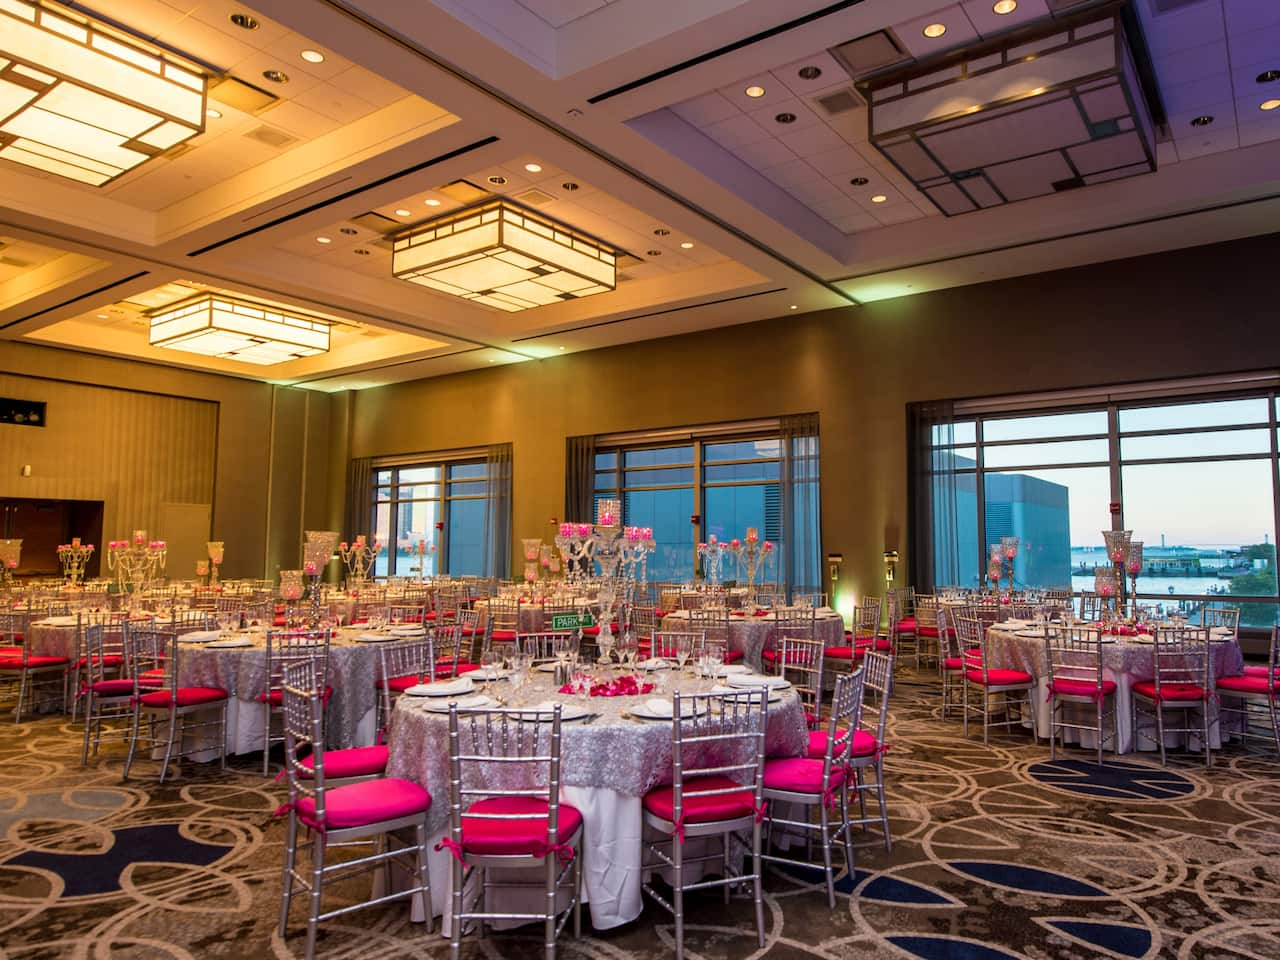 Ballroom set up as a wedding venue at Hyatt Regency Jersey City on the Hudson River